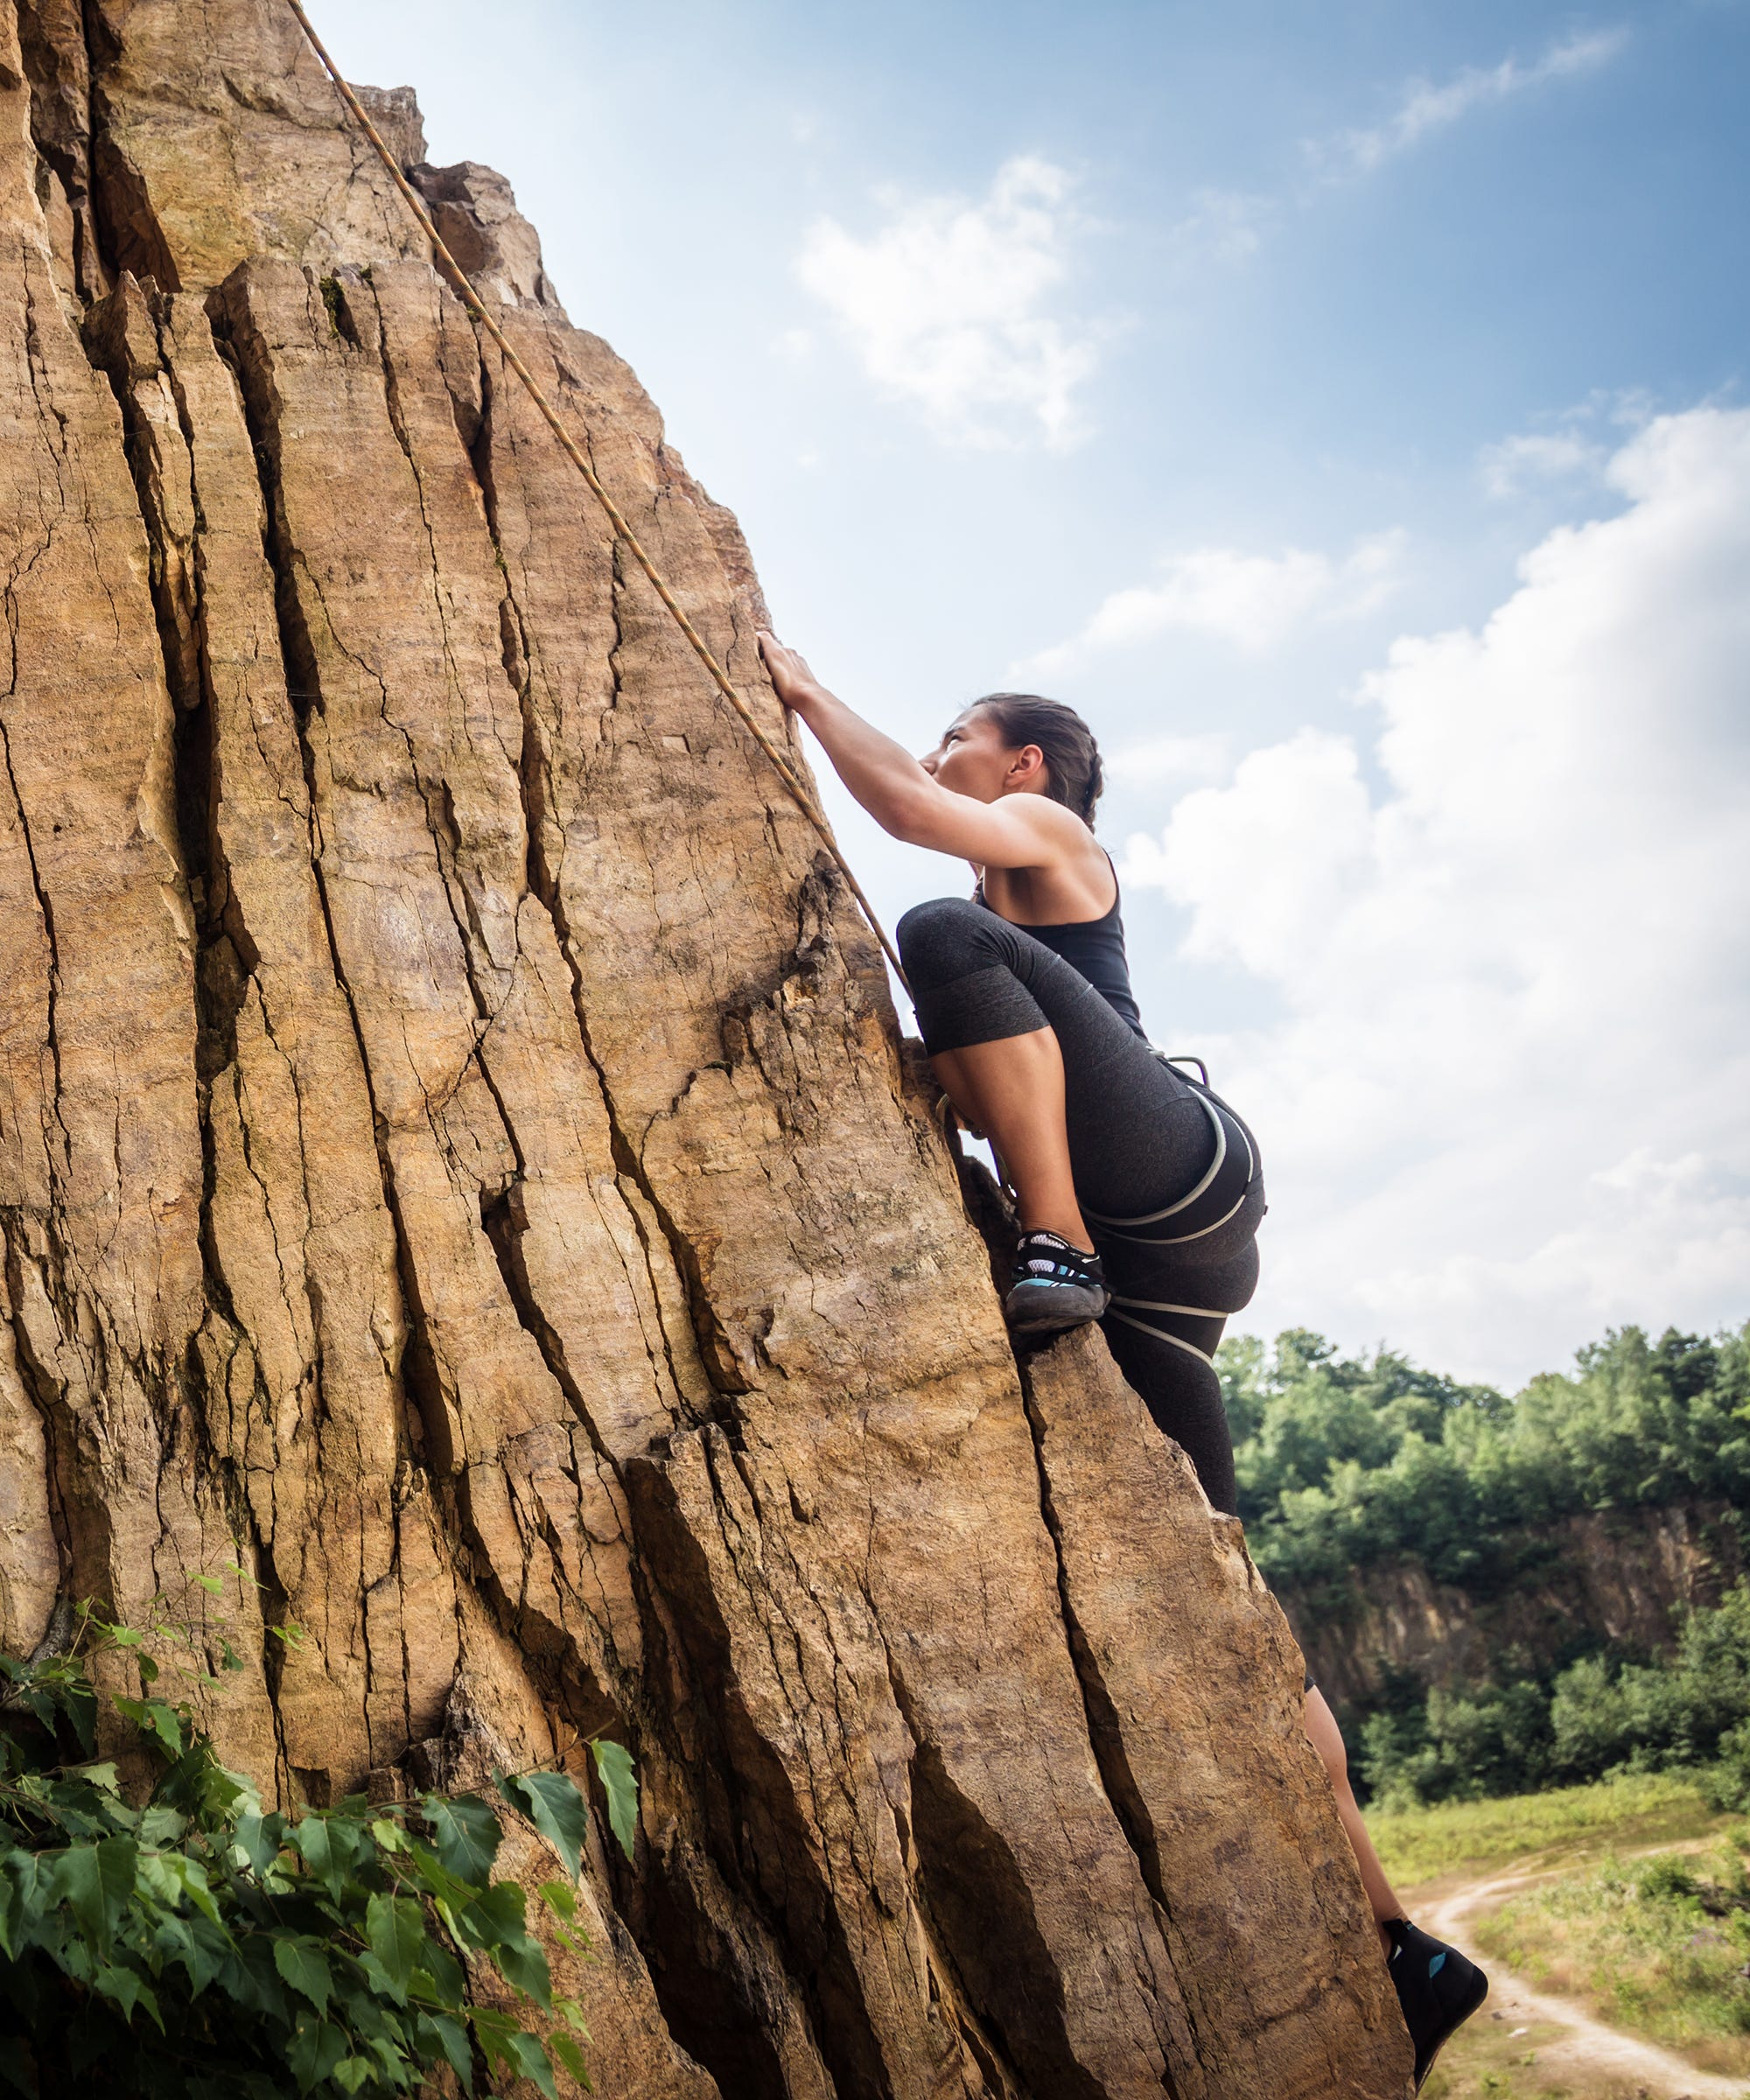 CLIMBING IS AS MUCH A MENTAL ACTIVITY AS A PHYSICAL ONE.